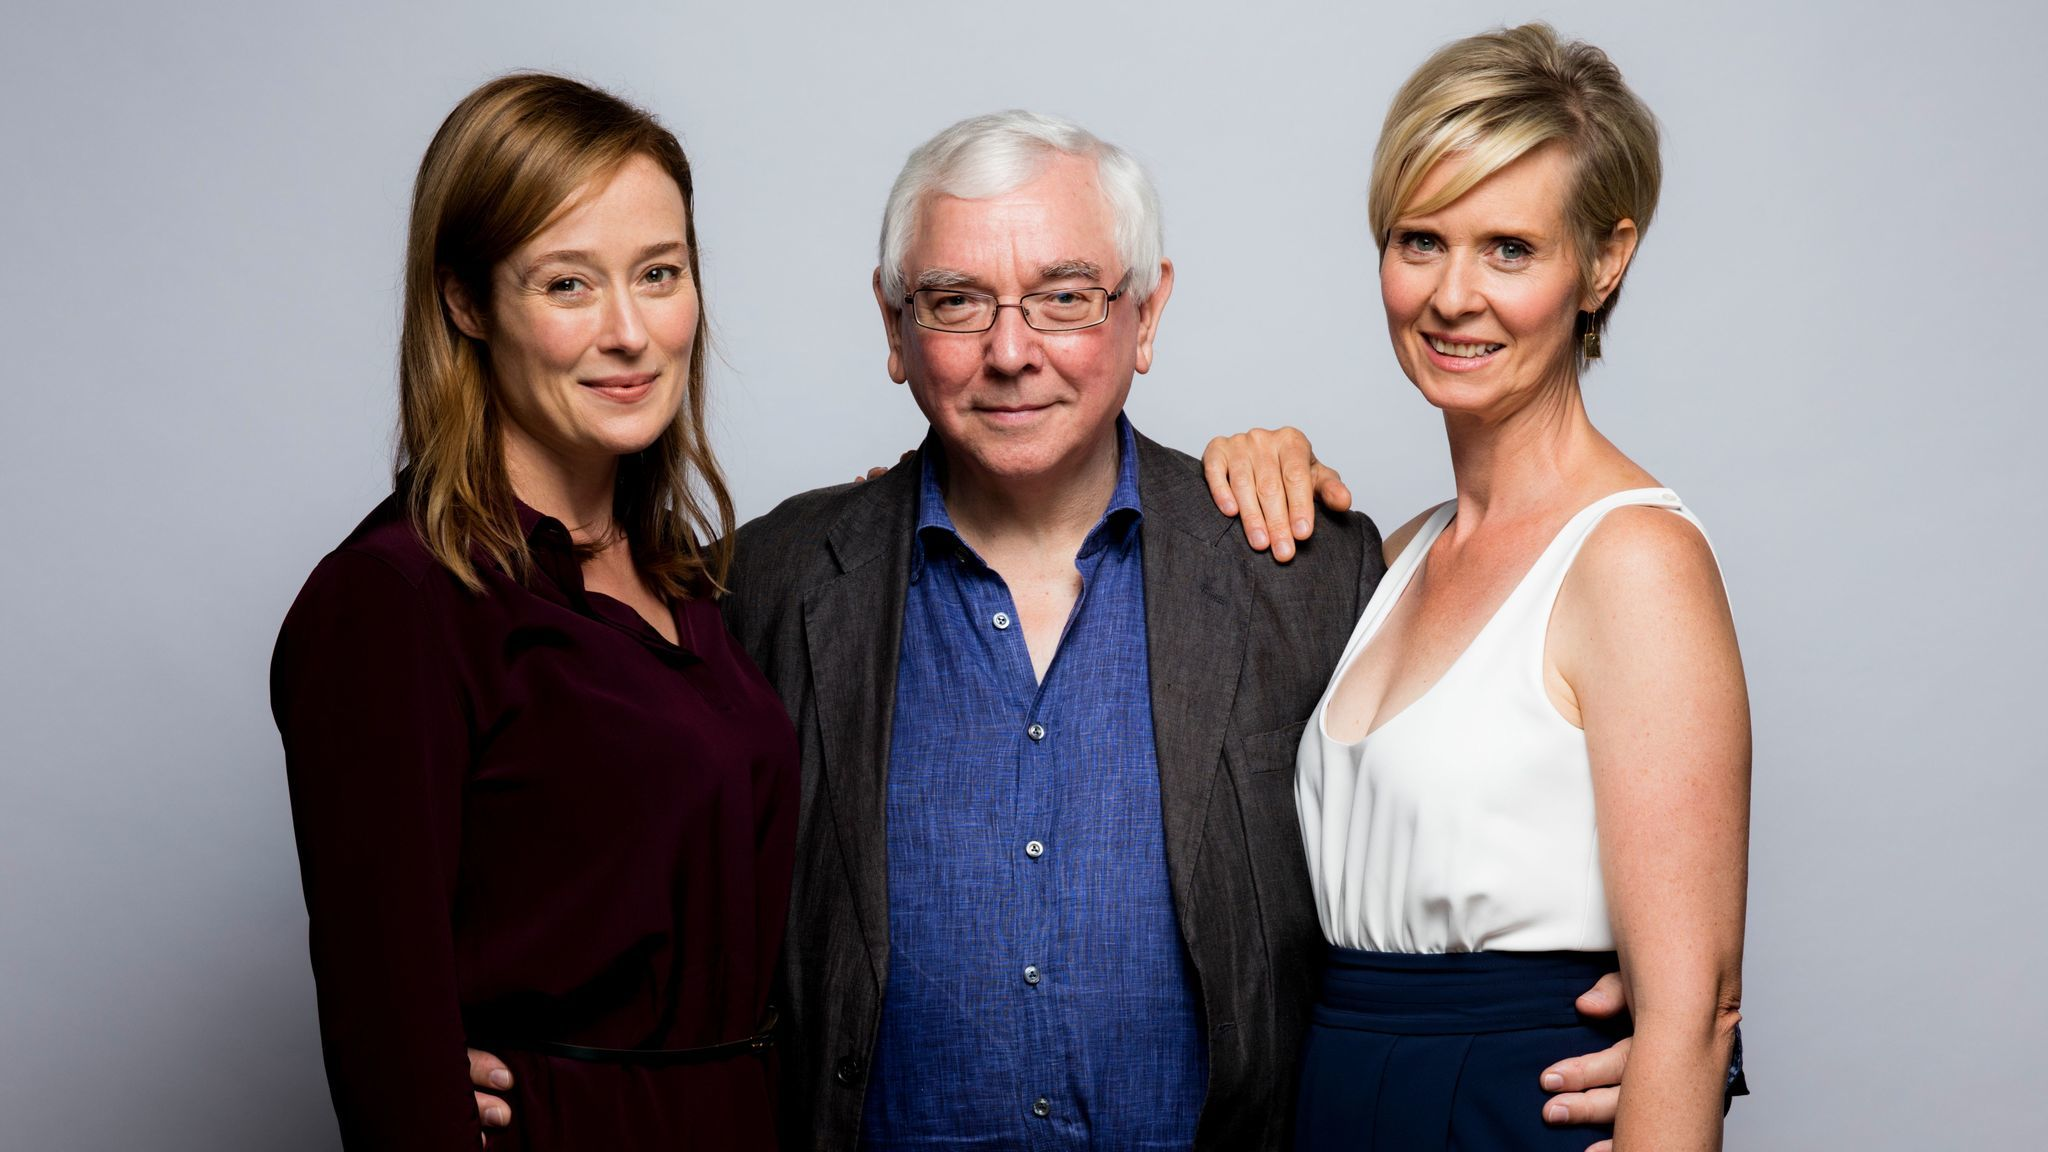 """Actress Cynthia Nixon, right, director Terence Davies, center and actress Jennifer Elhe from the film """"A Quiet Passion,"""" photographed in the L.A. Times photo studio at the Toronto International Film Festival, on Sept. 12, 2016."""